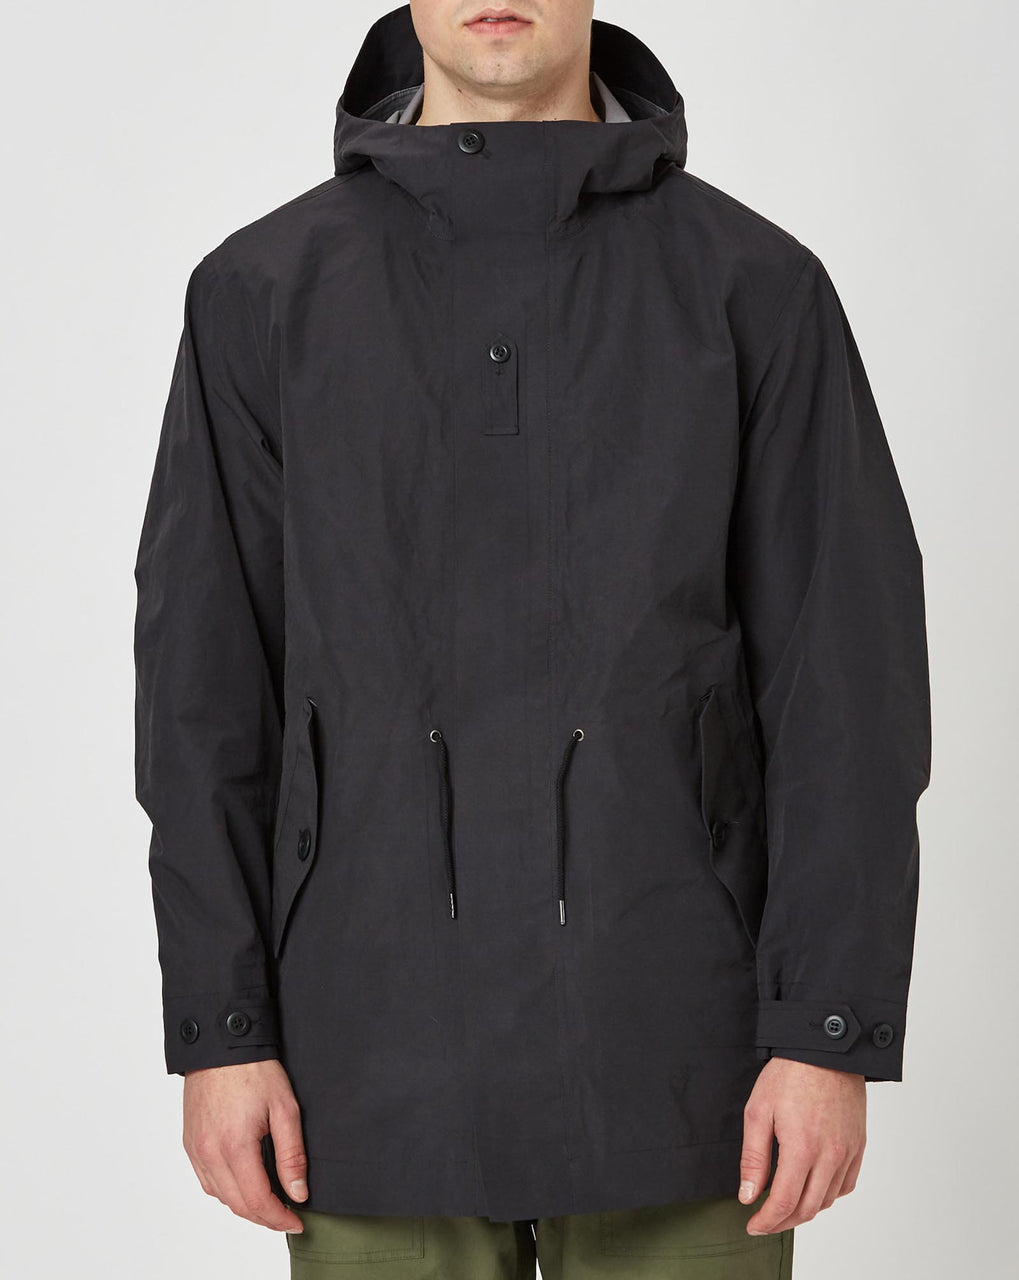 Snow Peak eVent C/N Rain Jacket (Black)